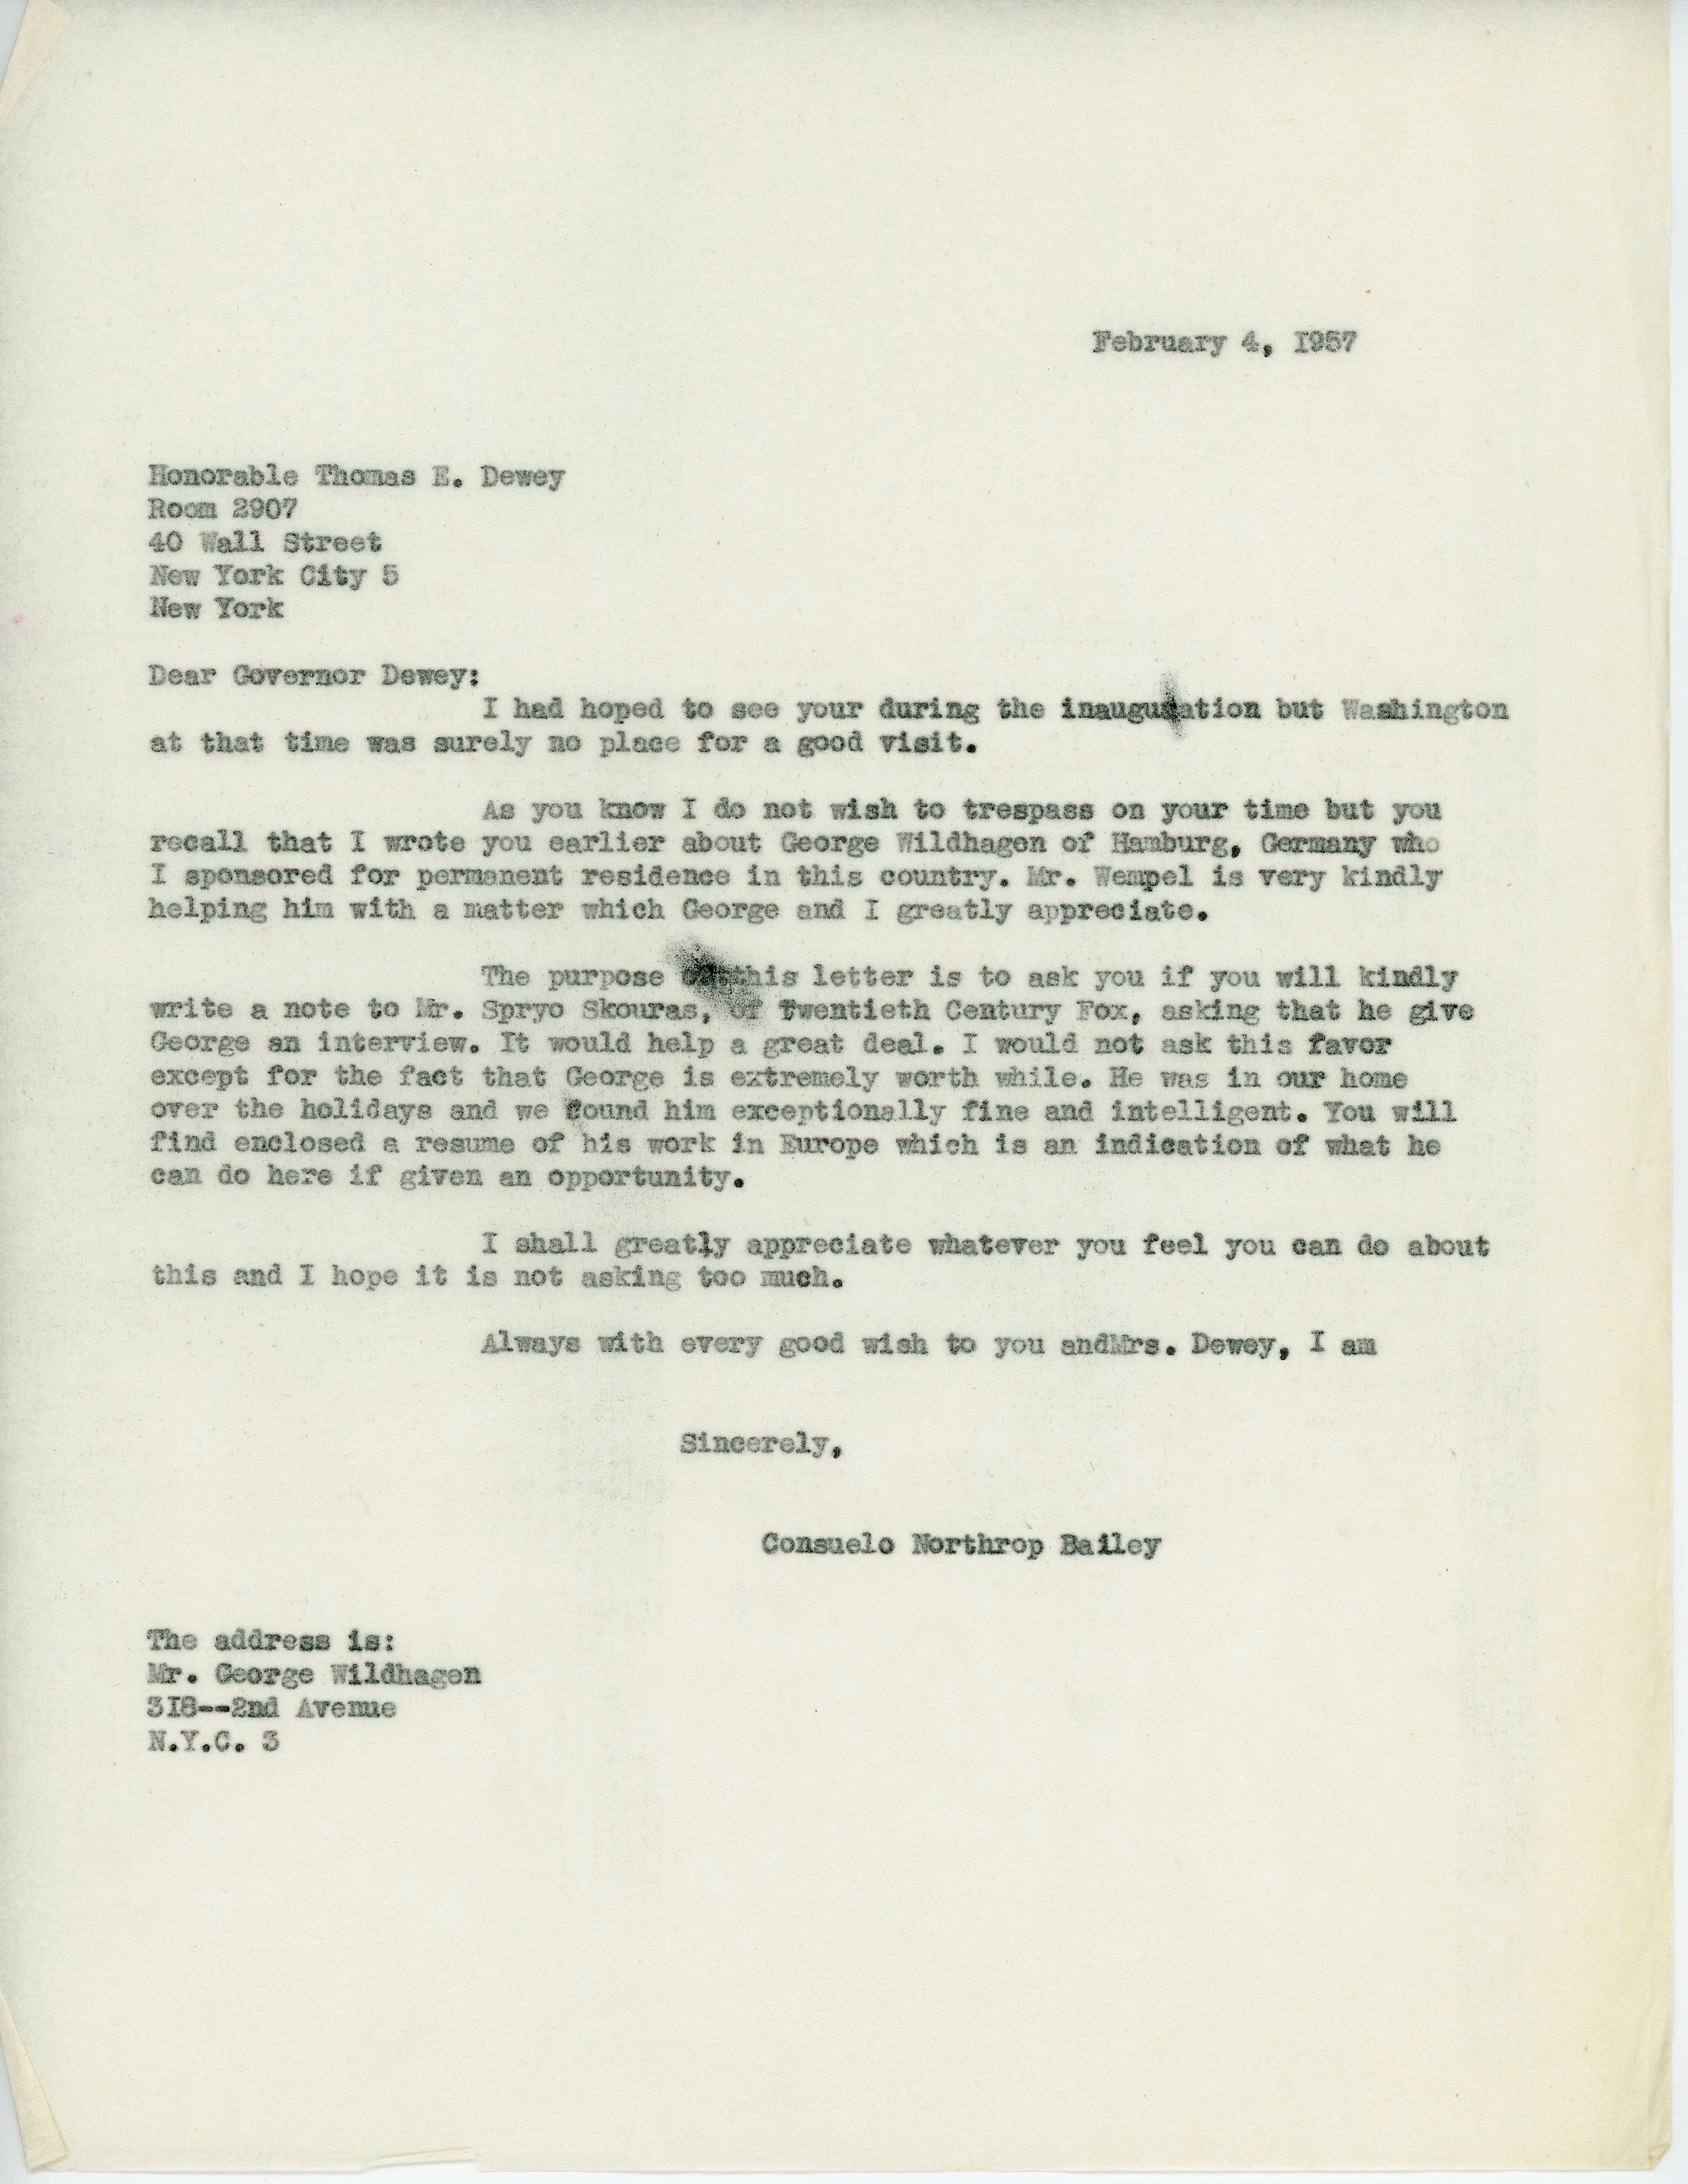 Letter from Consuelo Northrop Bailey to Thomas Dewey, 1957 February 4